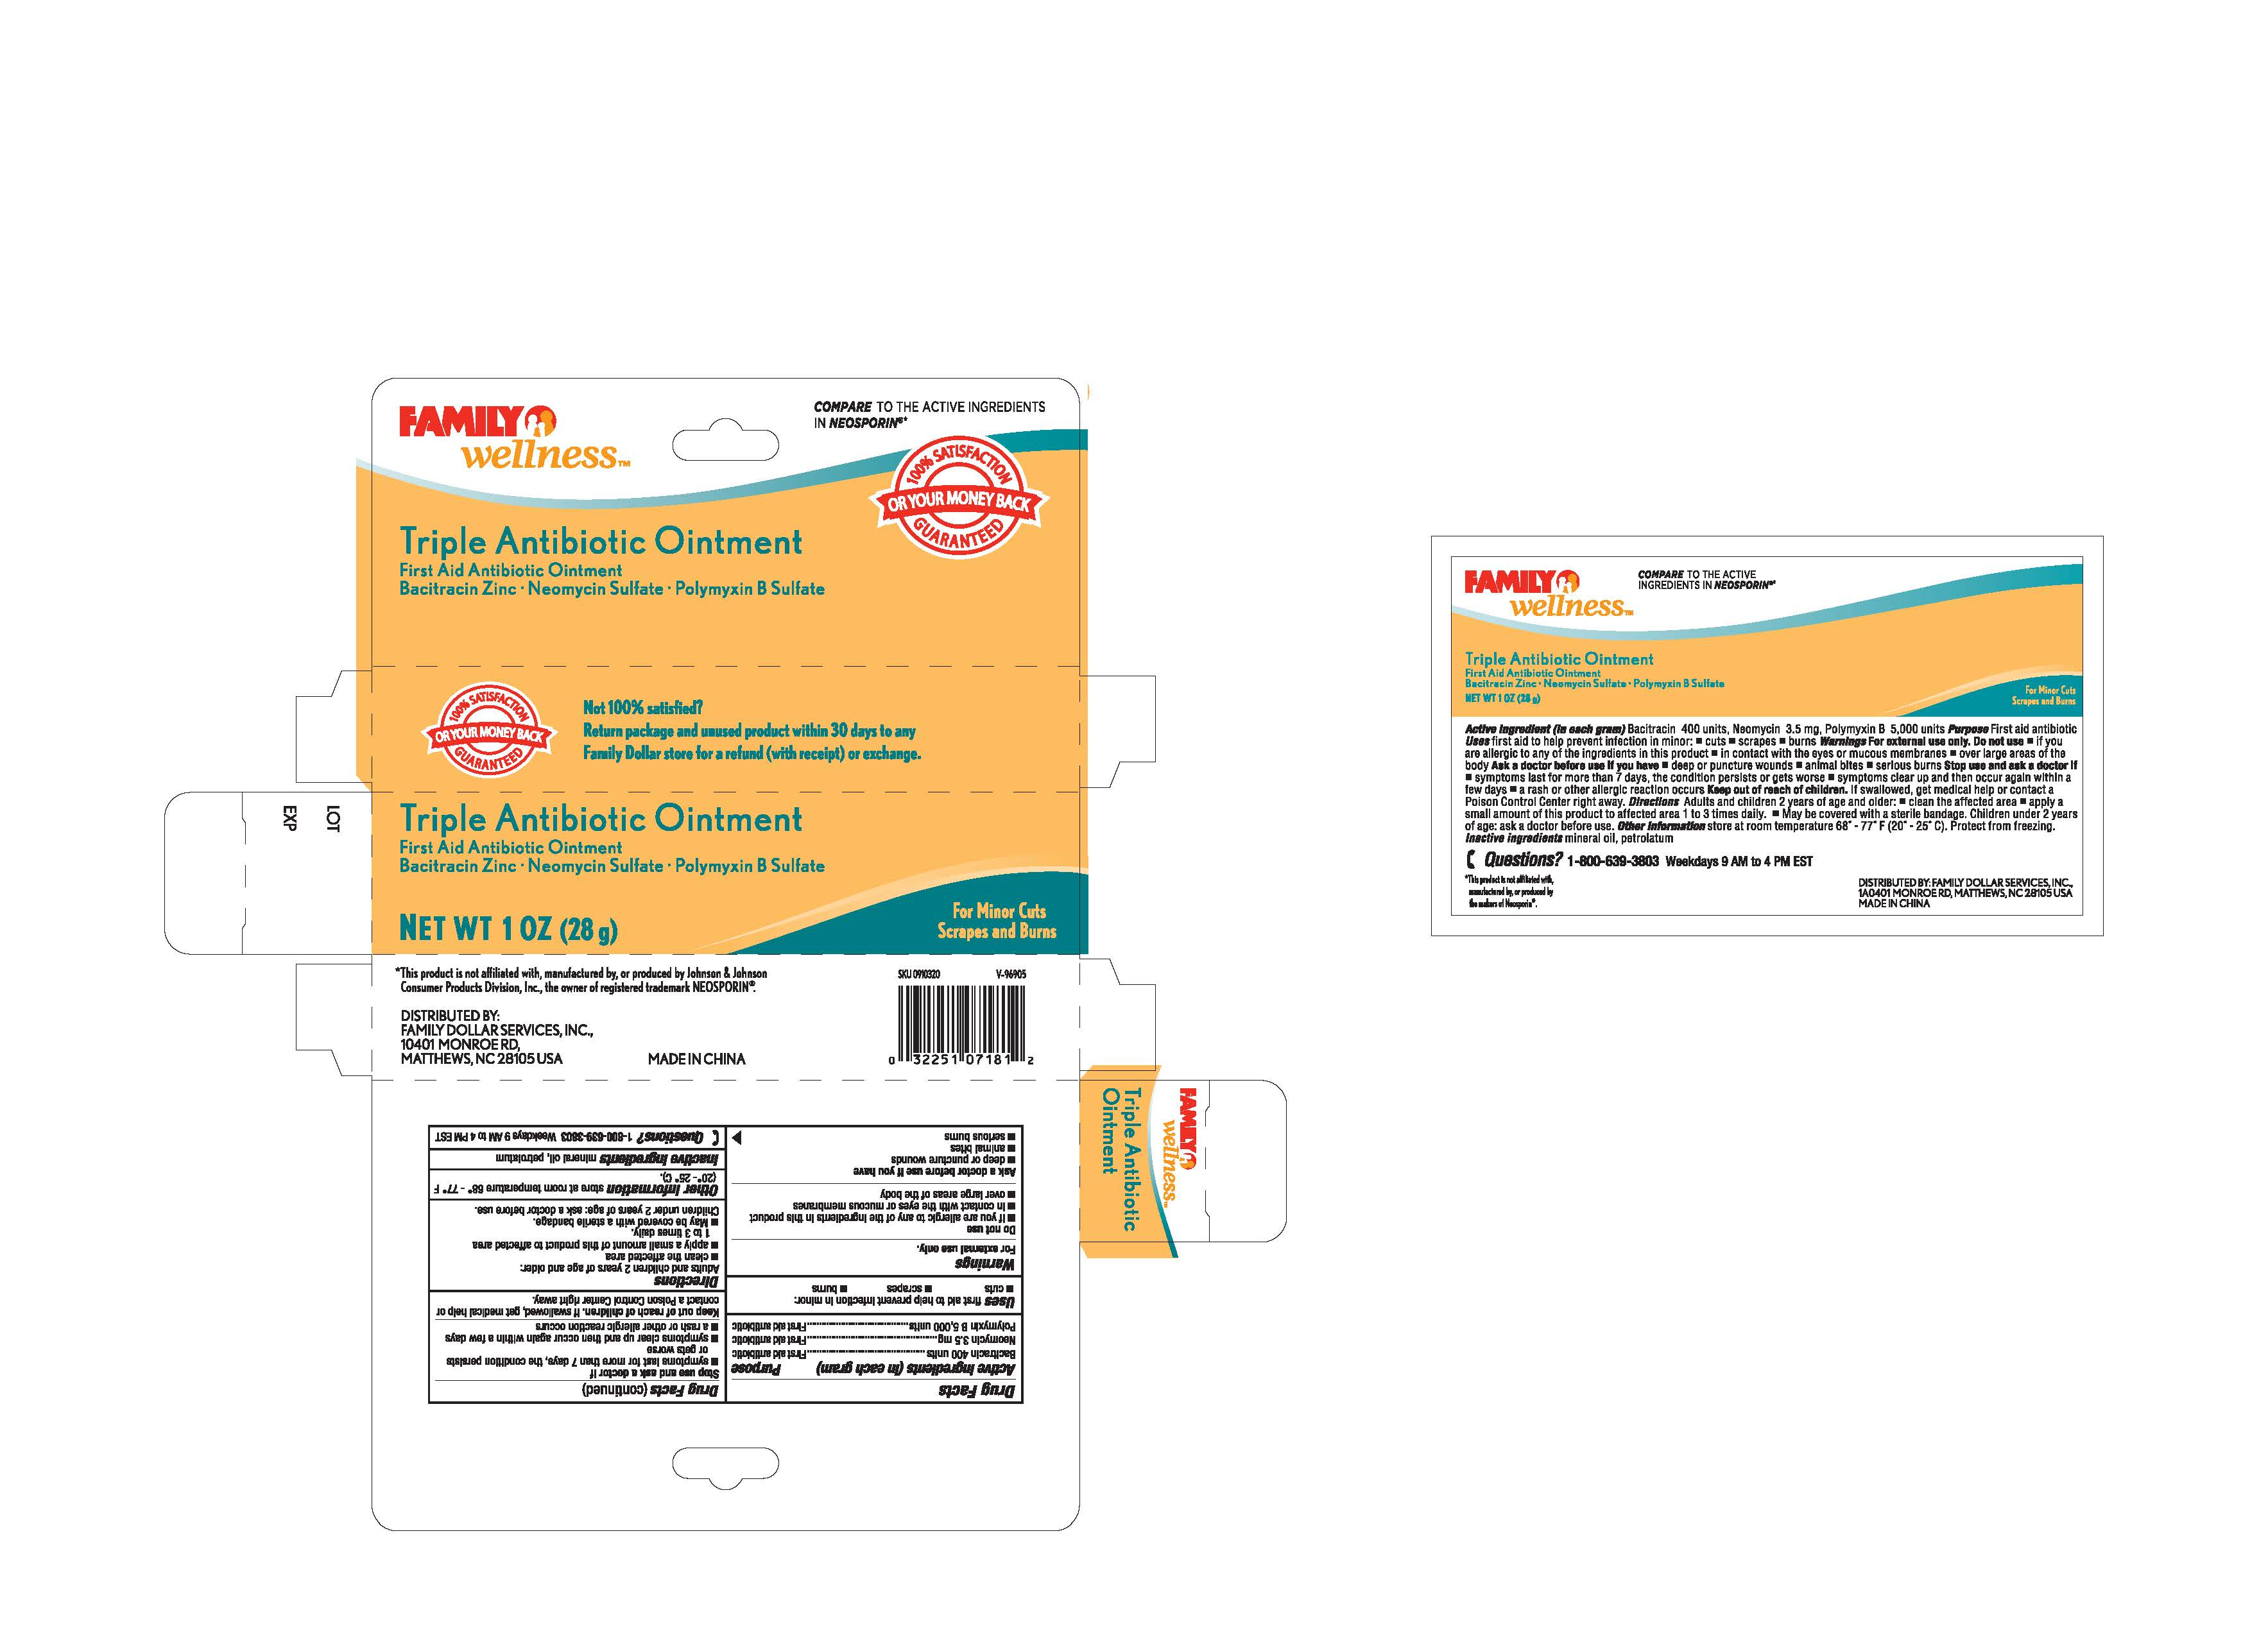 Family Wellness (Neomycin, Bacitracin, Polymyxin) Ointment [Zhejiang Jingwei Pharmaceutical Co., Ltd.]